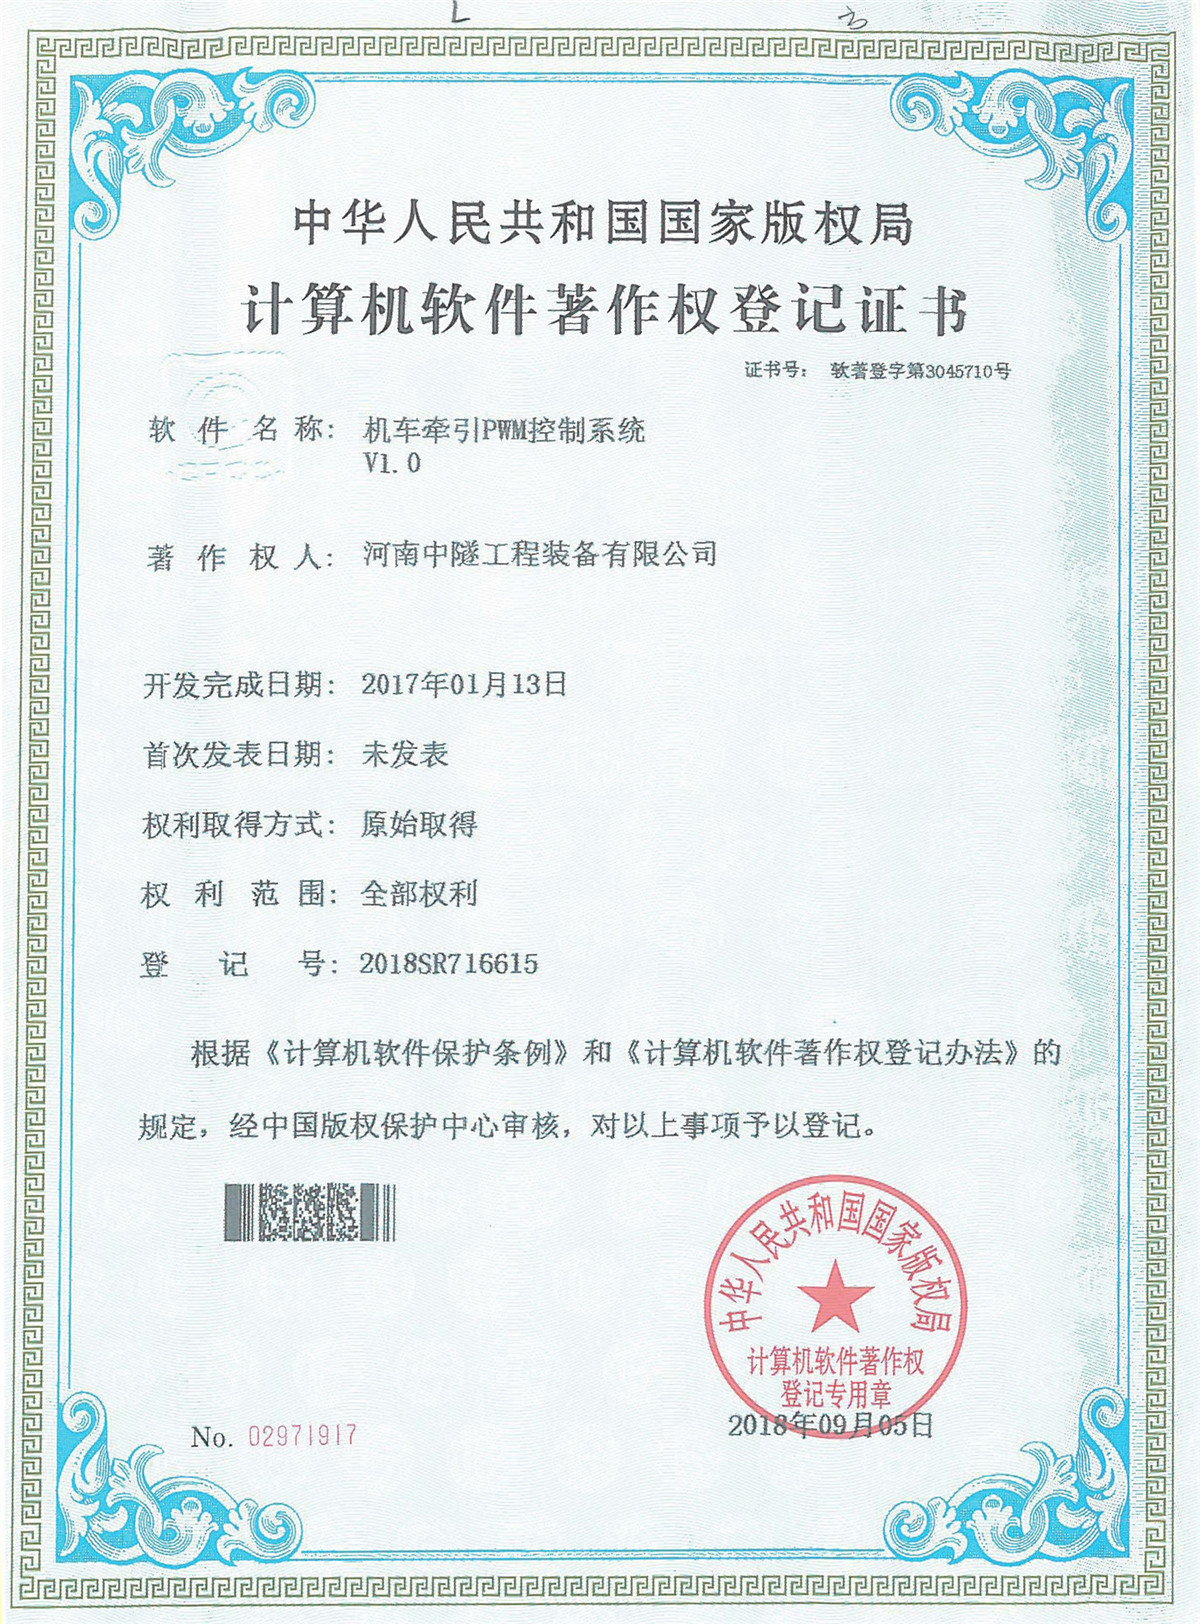 Registration Certificate Of Locomotive Traction PWM Control System